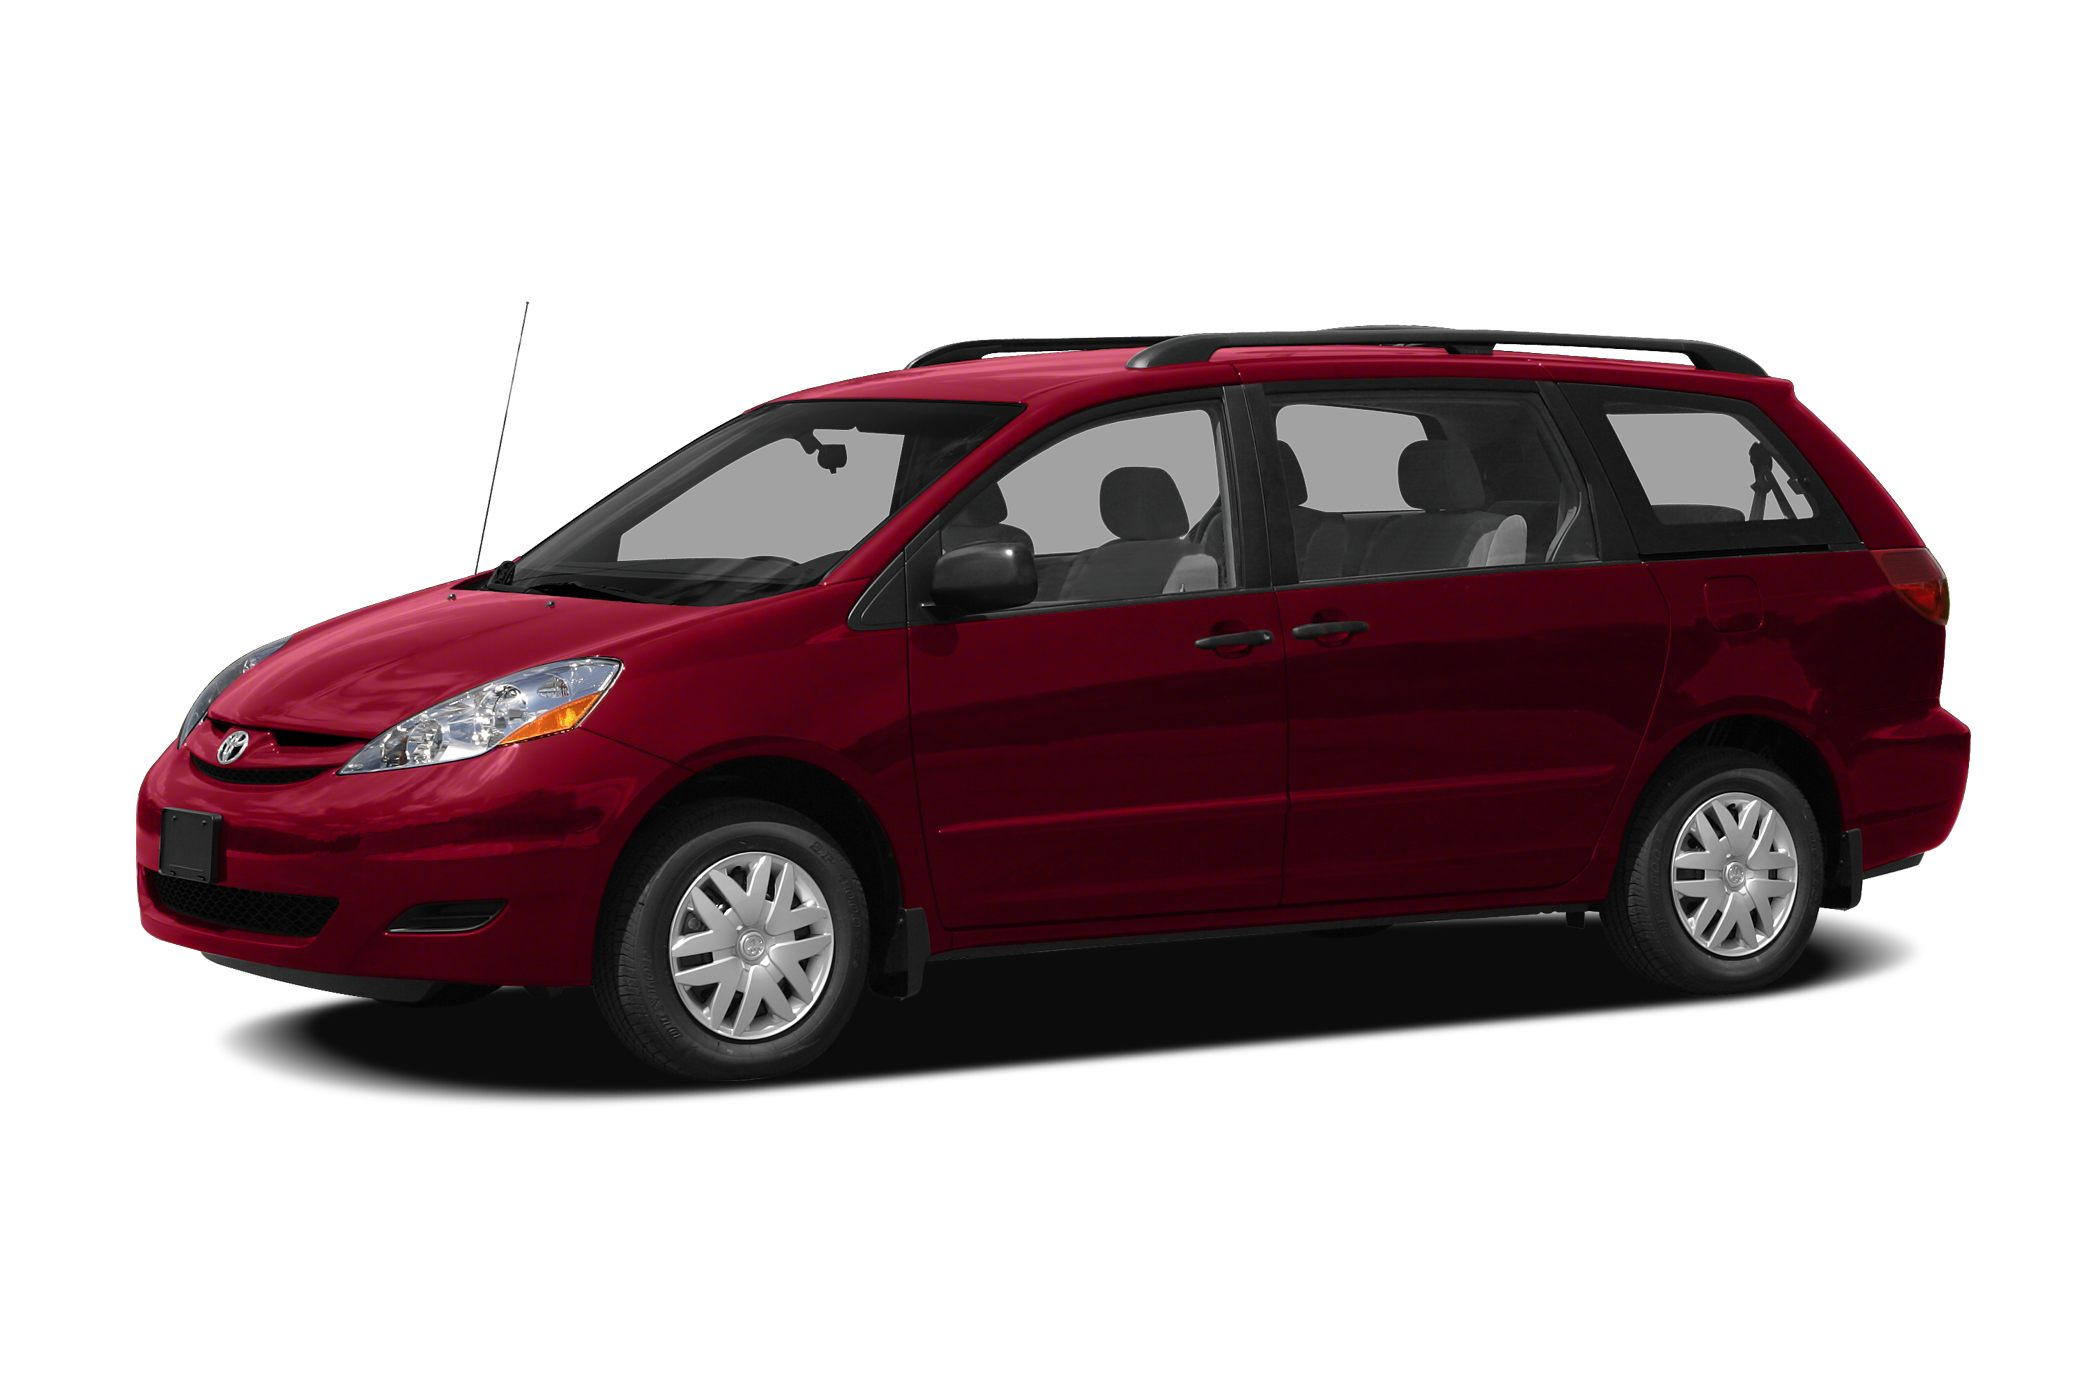 2010 Toyota Sienna XLE Minivan for sale in Muscatine for $12,995 with 215,258 miles